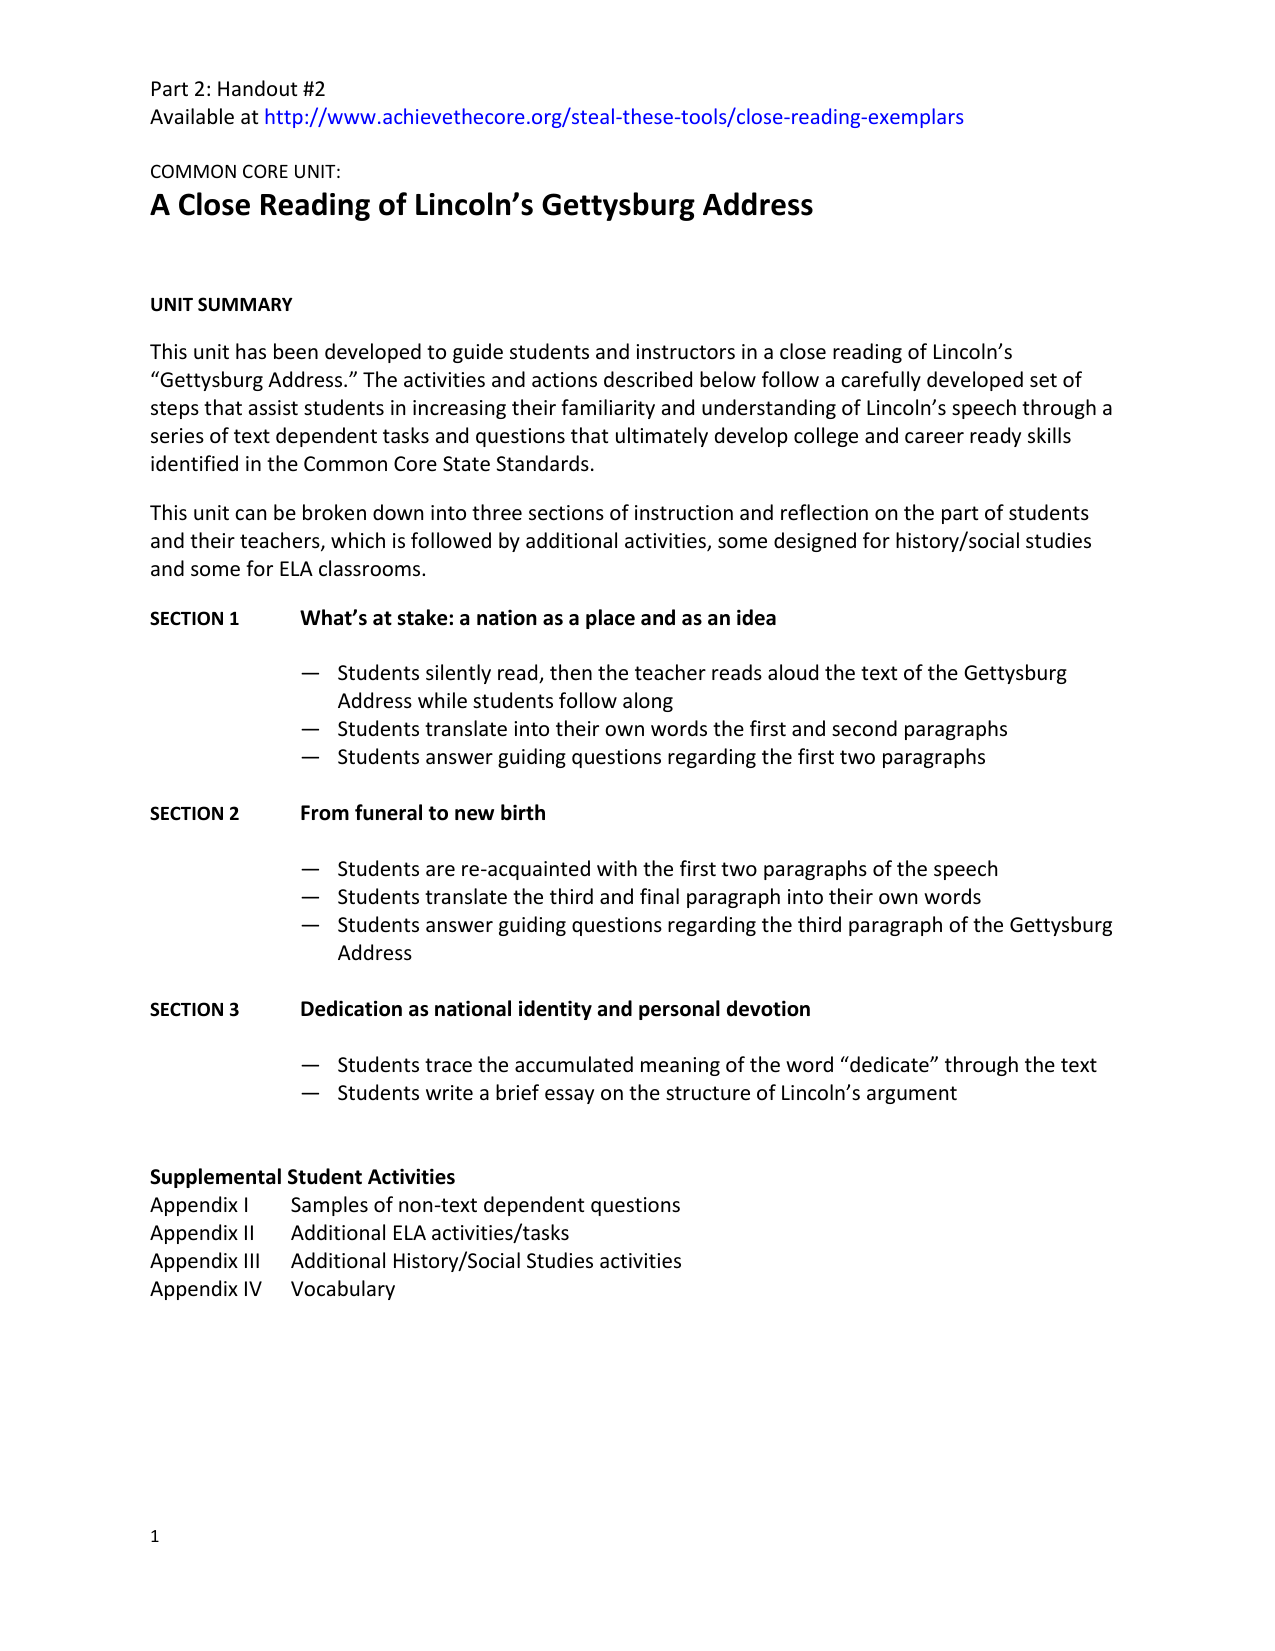 Health Issues Essay  Essays About Health Care also Sample Persuasive Essay High School A Close Reading Of Lincolns Gettysburg Address Environmental Health Essay